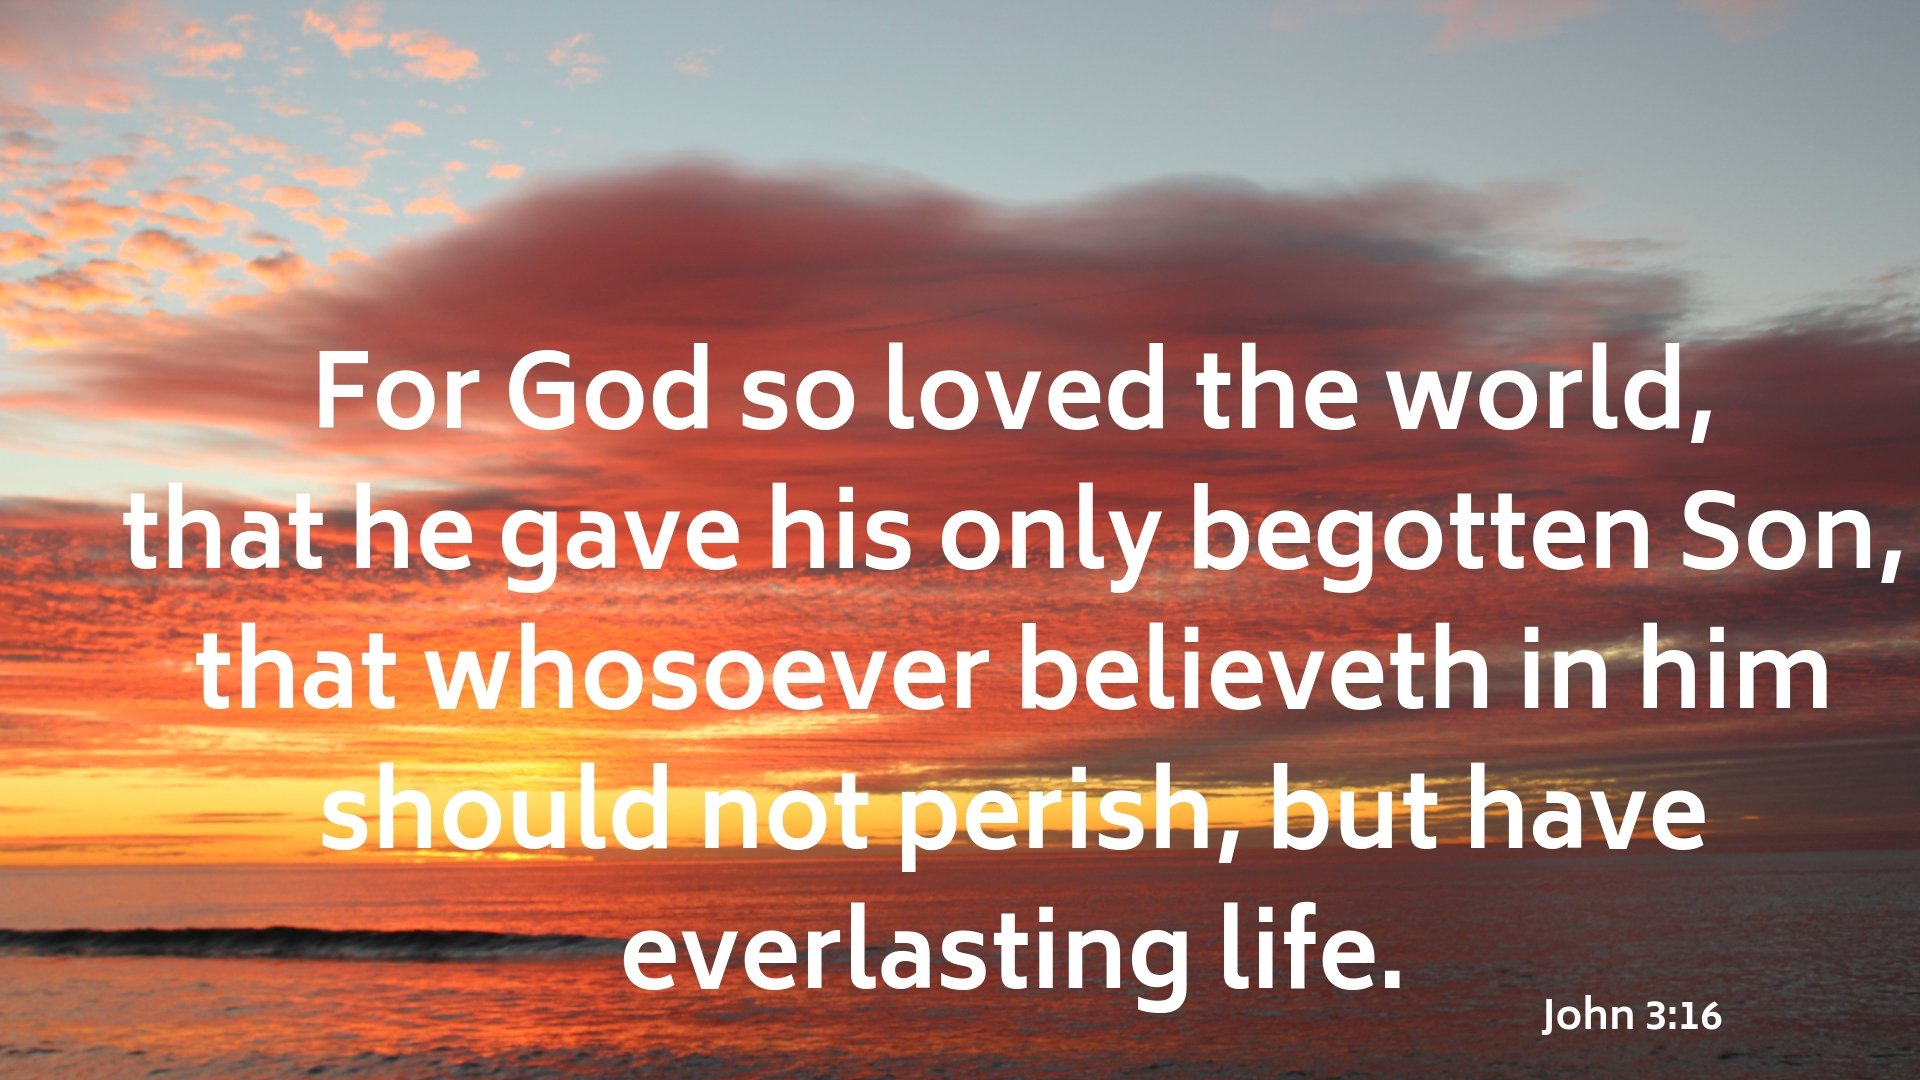 For God so loved the world,that he gave his only begotten Son,that whosoever believeth in him should not perish,but have everlasting life. v2